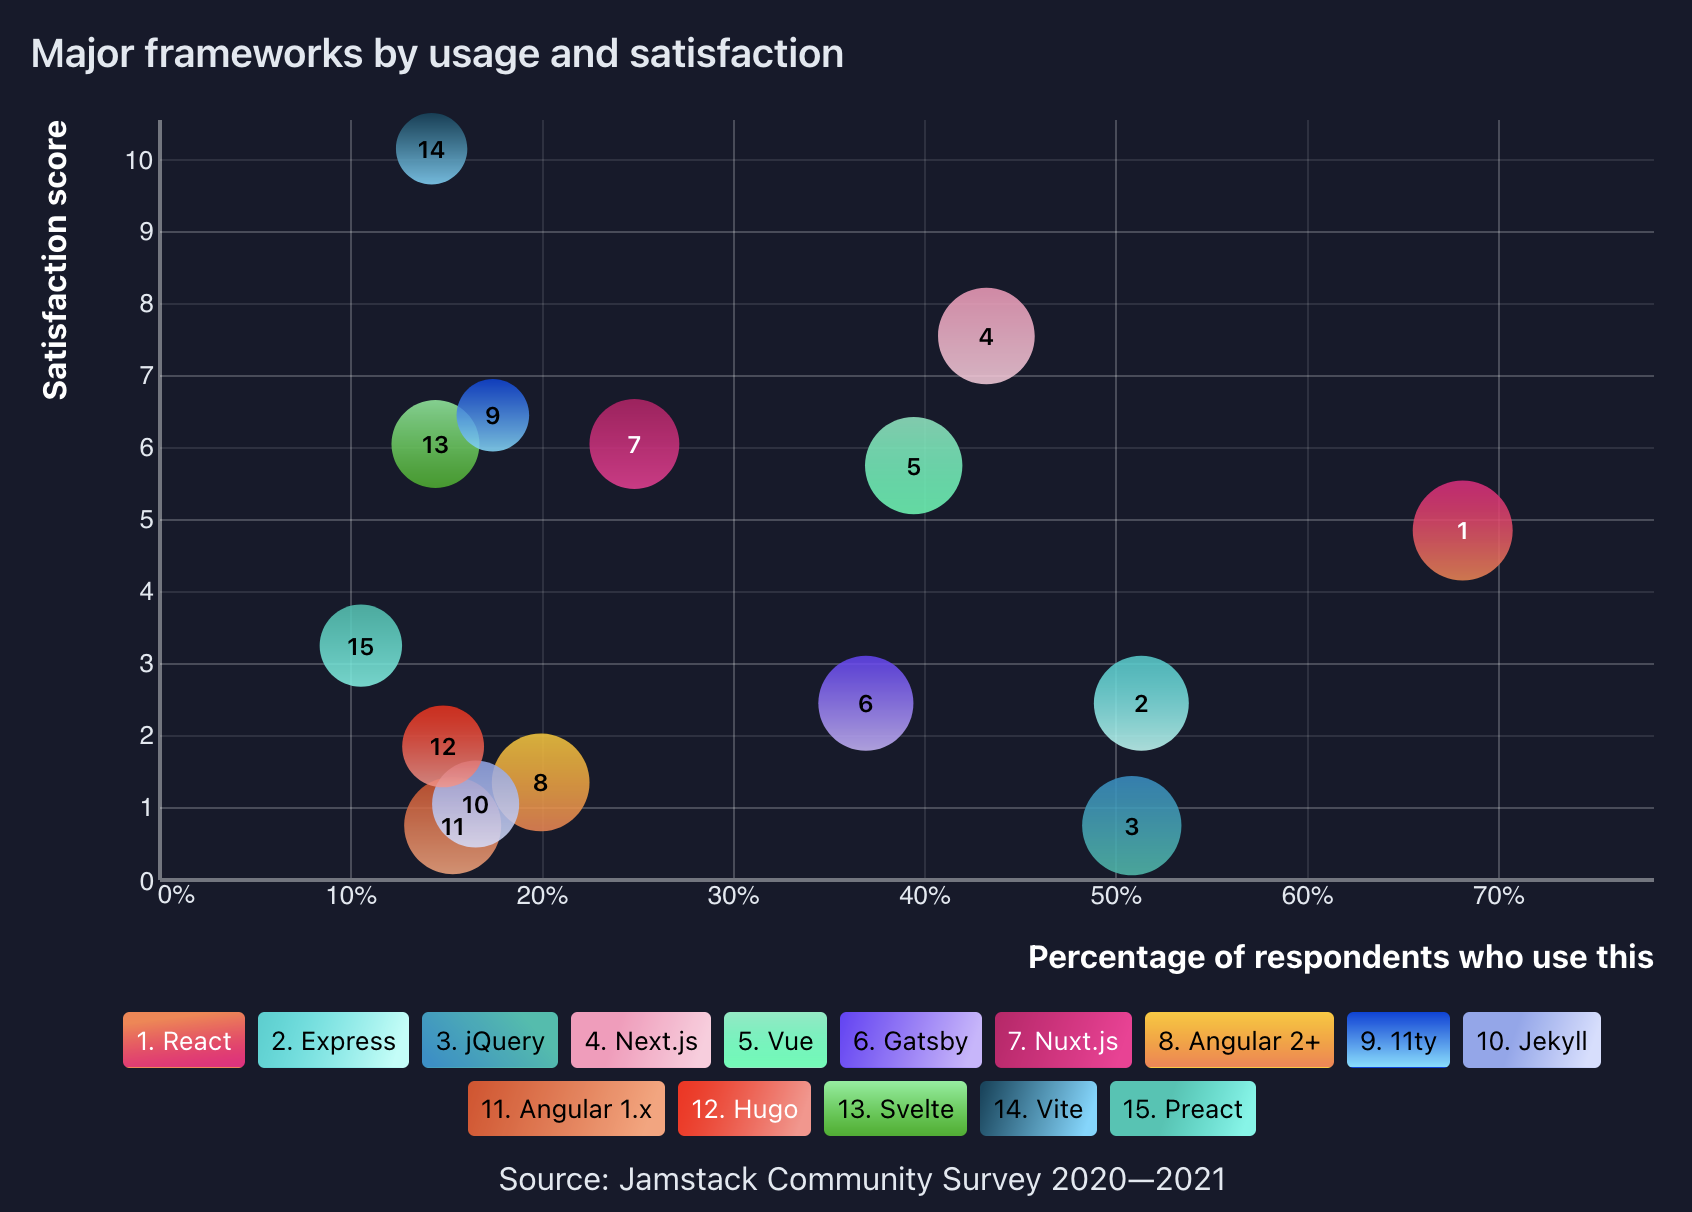 Graph of major frameworks showing React with greatest usage and Next.js as second-most satisfied users after Vite, plus 13 other frameworks.